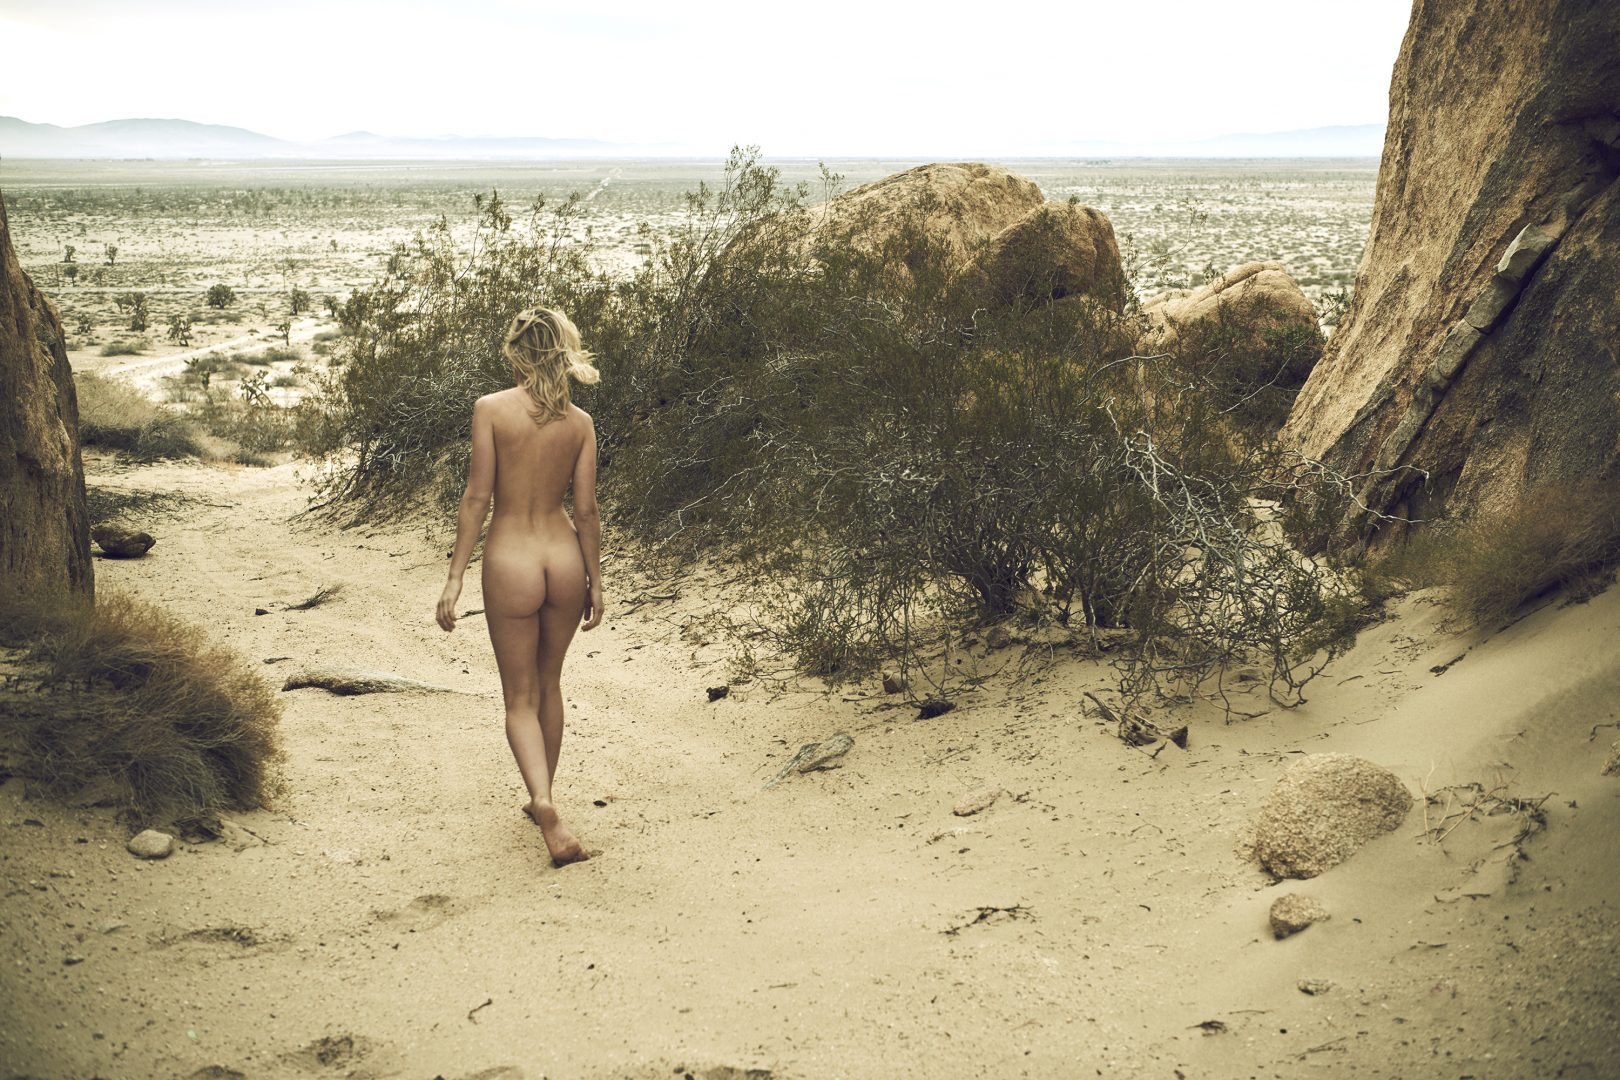 Naked girl walking in the desert by Stefan Rappo